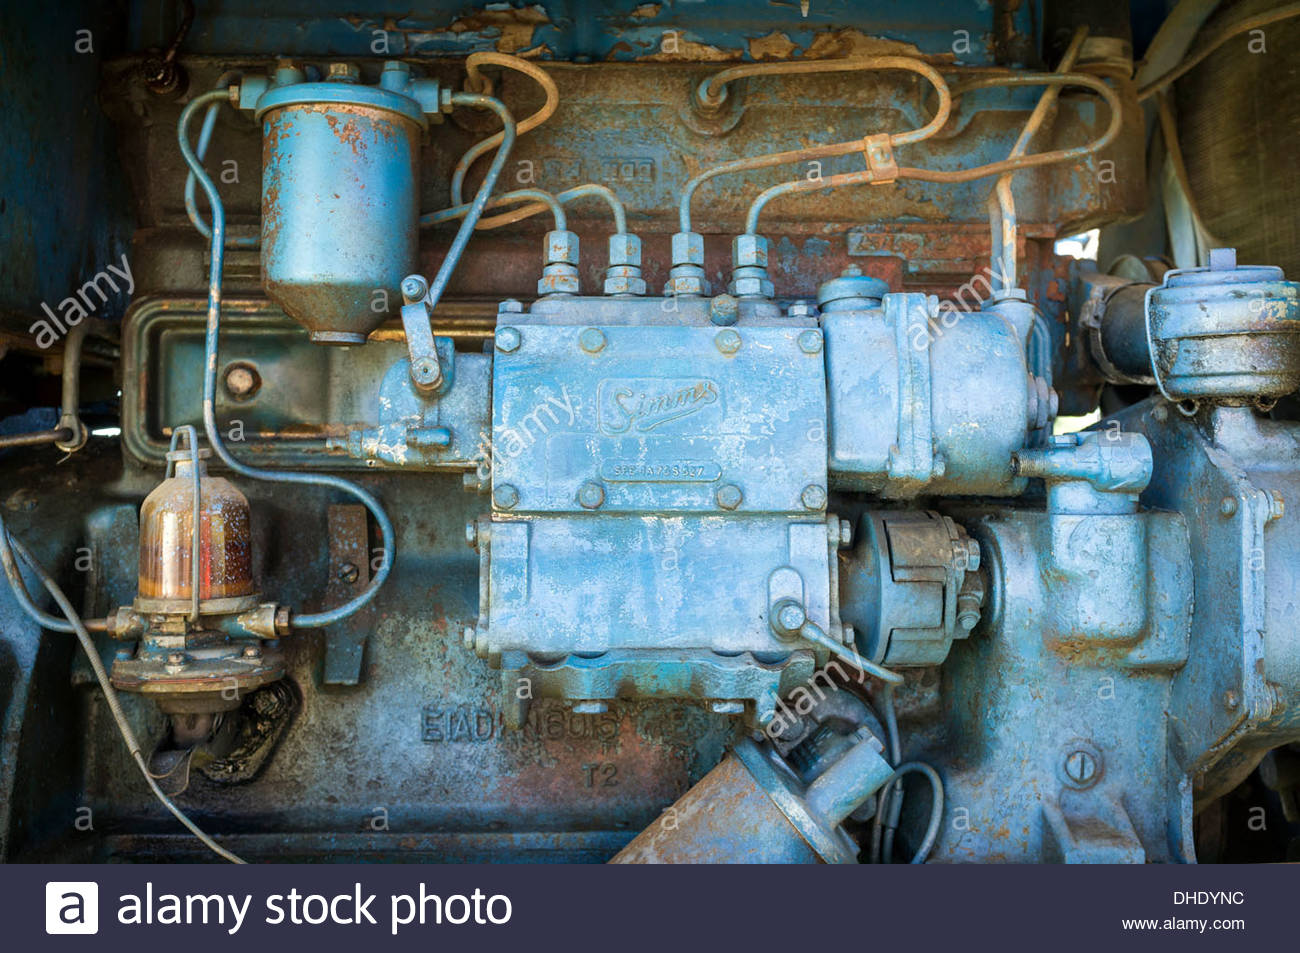 hight resolution of diesel fuel system fuel injectors fuel pump and injection pump from a fordson power major vintage tractor